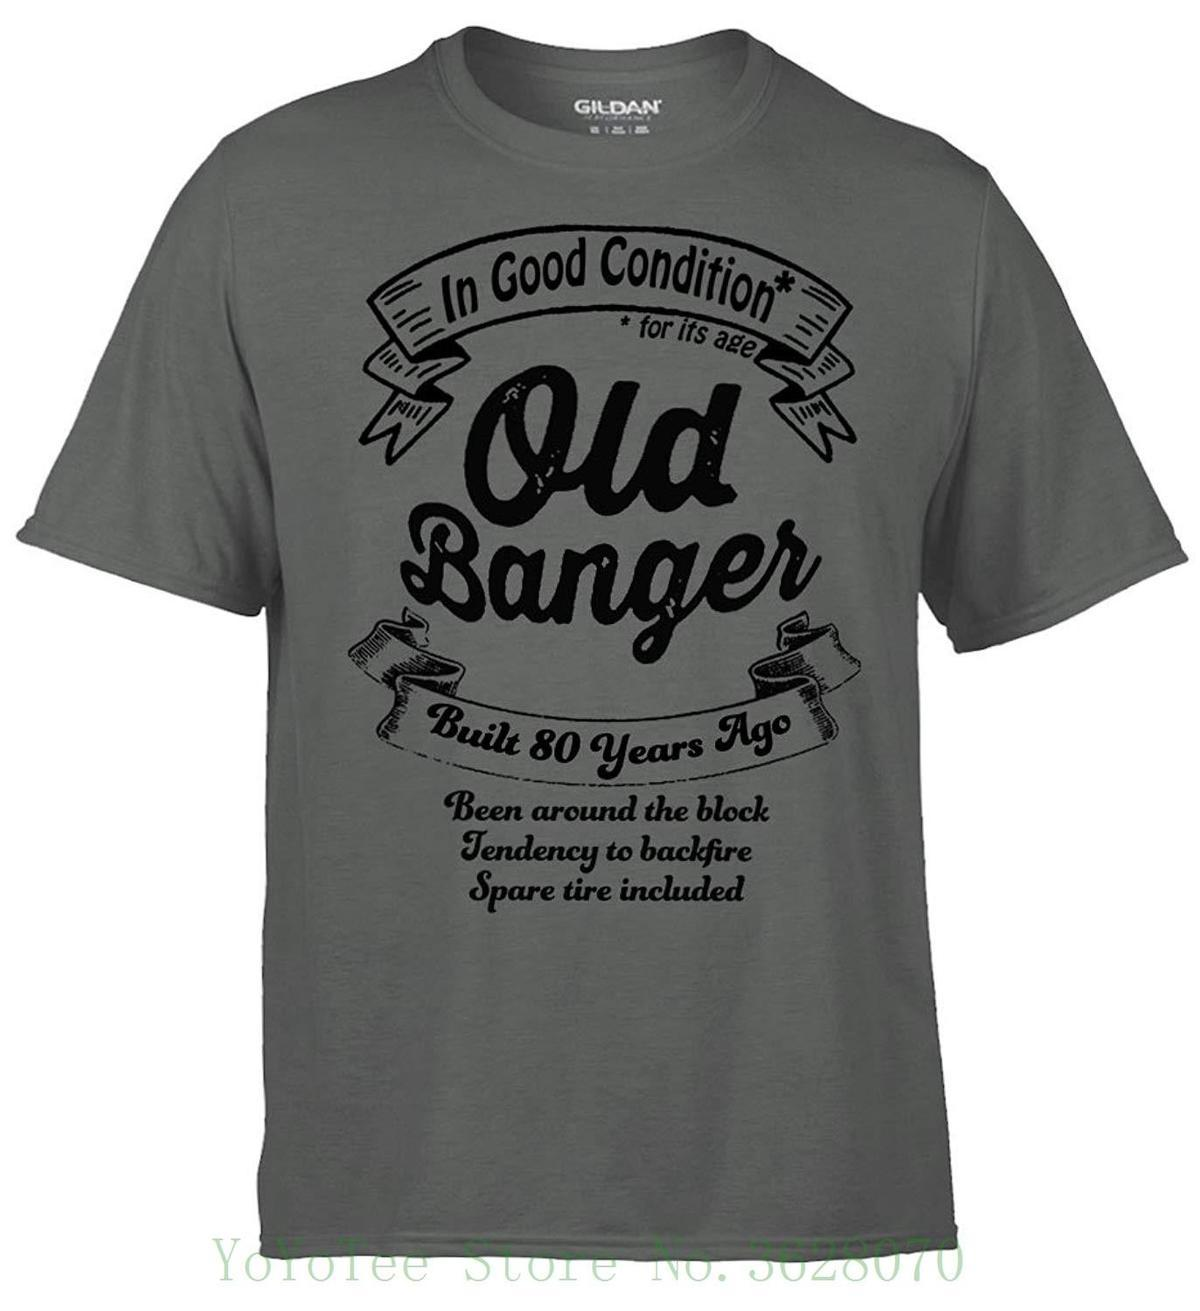 Brandevo 80th Birthday Mens T Shirt Old Banger Charcoal Grey Fun Quality Present MenS O Neck Printed Tee Design Your Personalized